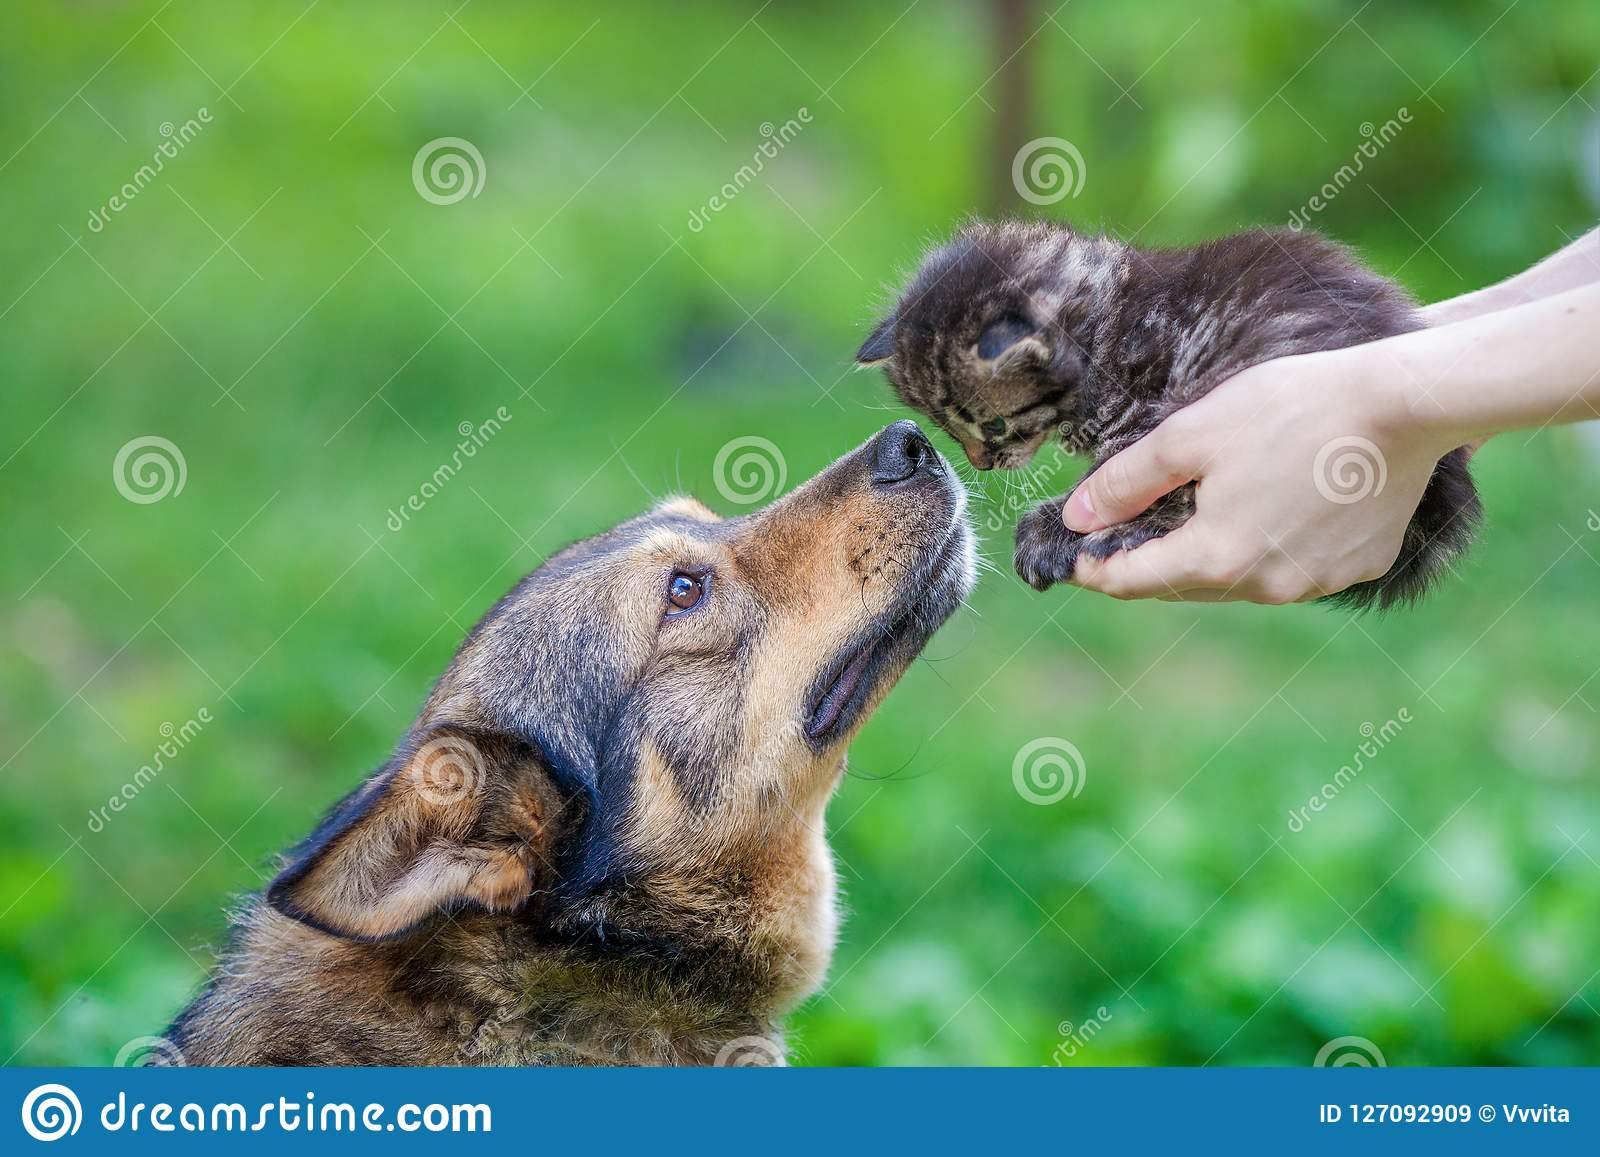 A large dog sniffing a small kitten